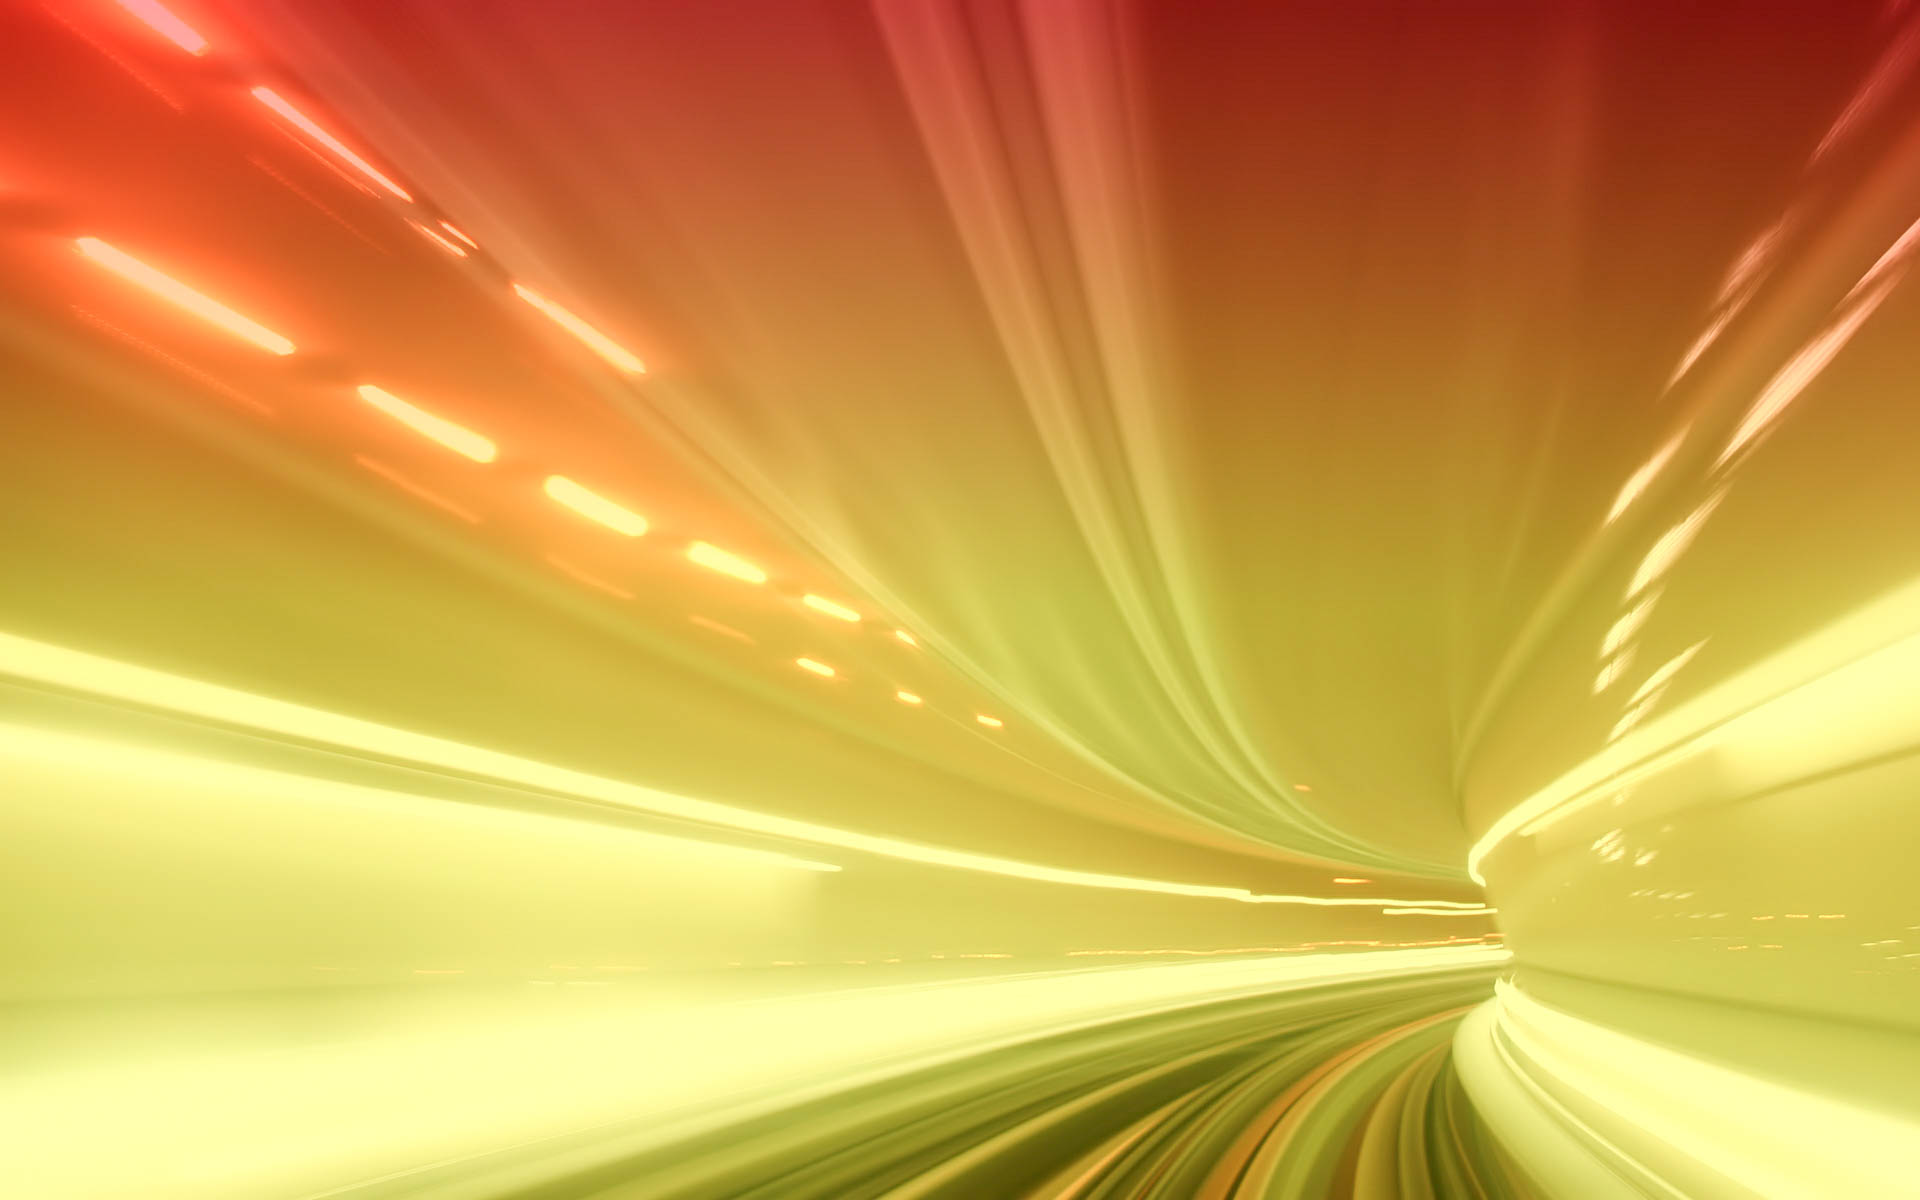 Abstract Yellow Awesome Hd Wallpapers Images Backgrounds